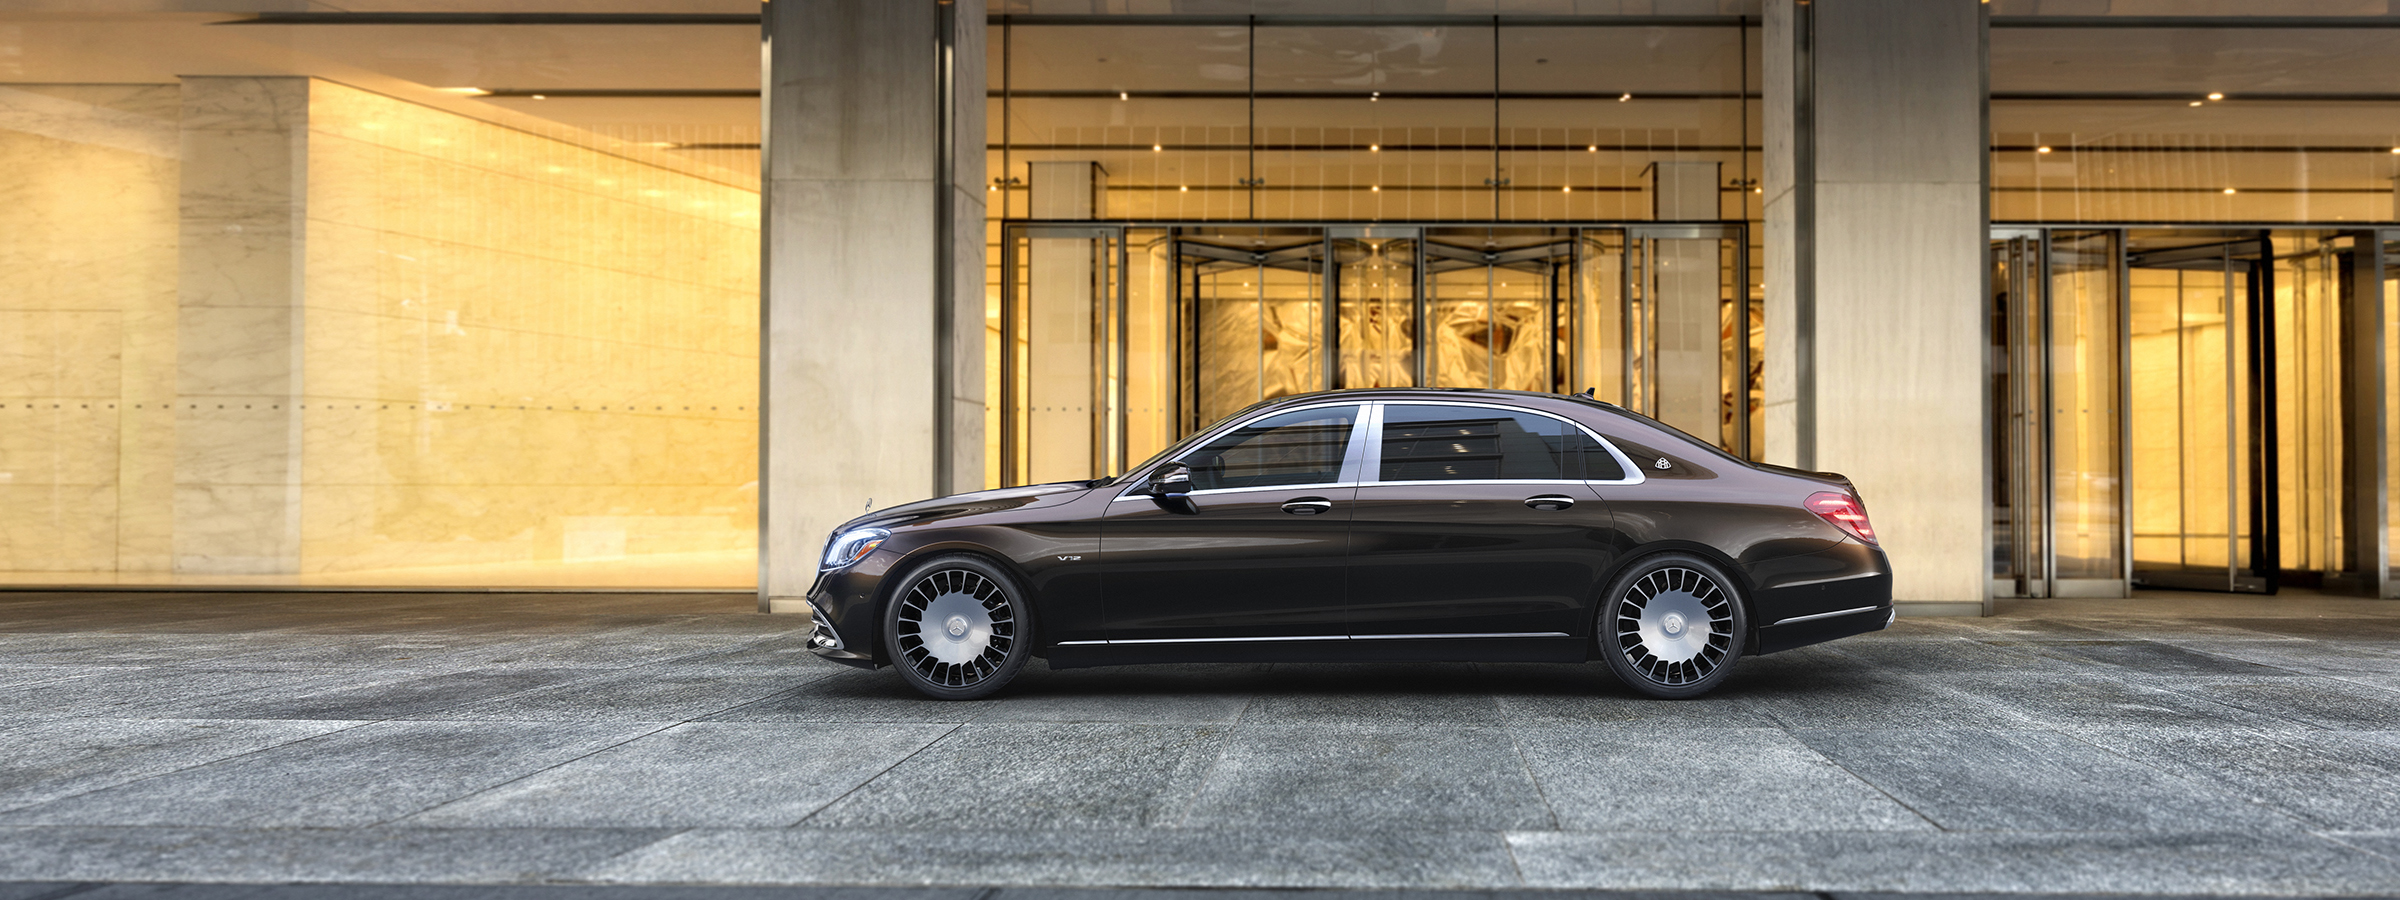 HERO MAYBACH